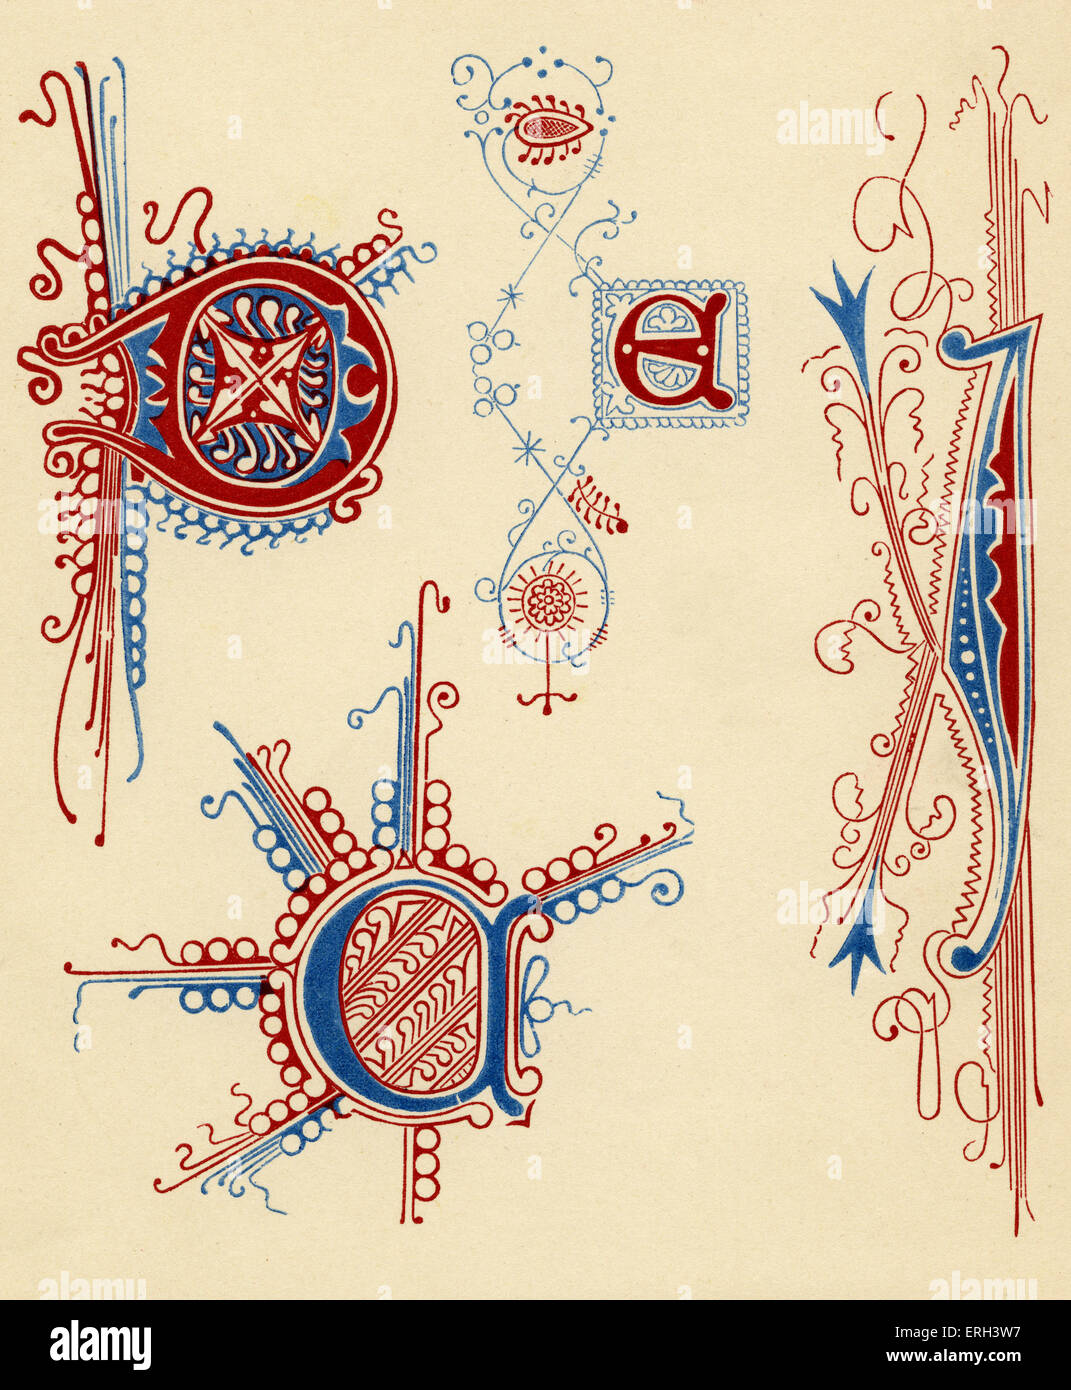 Illuminated letters.  Fourteenth and fifteenth century. (1886 source). - Stock Image